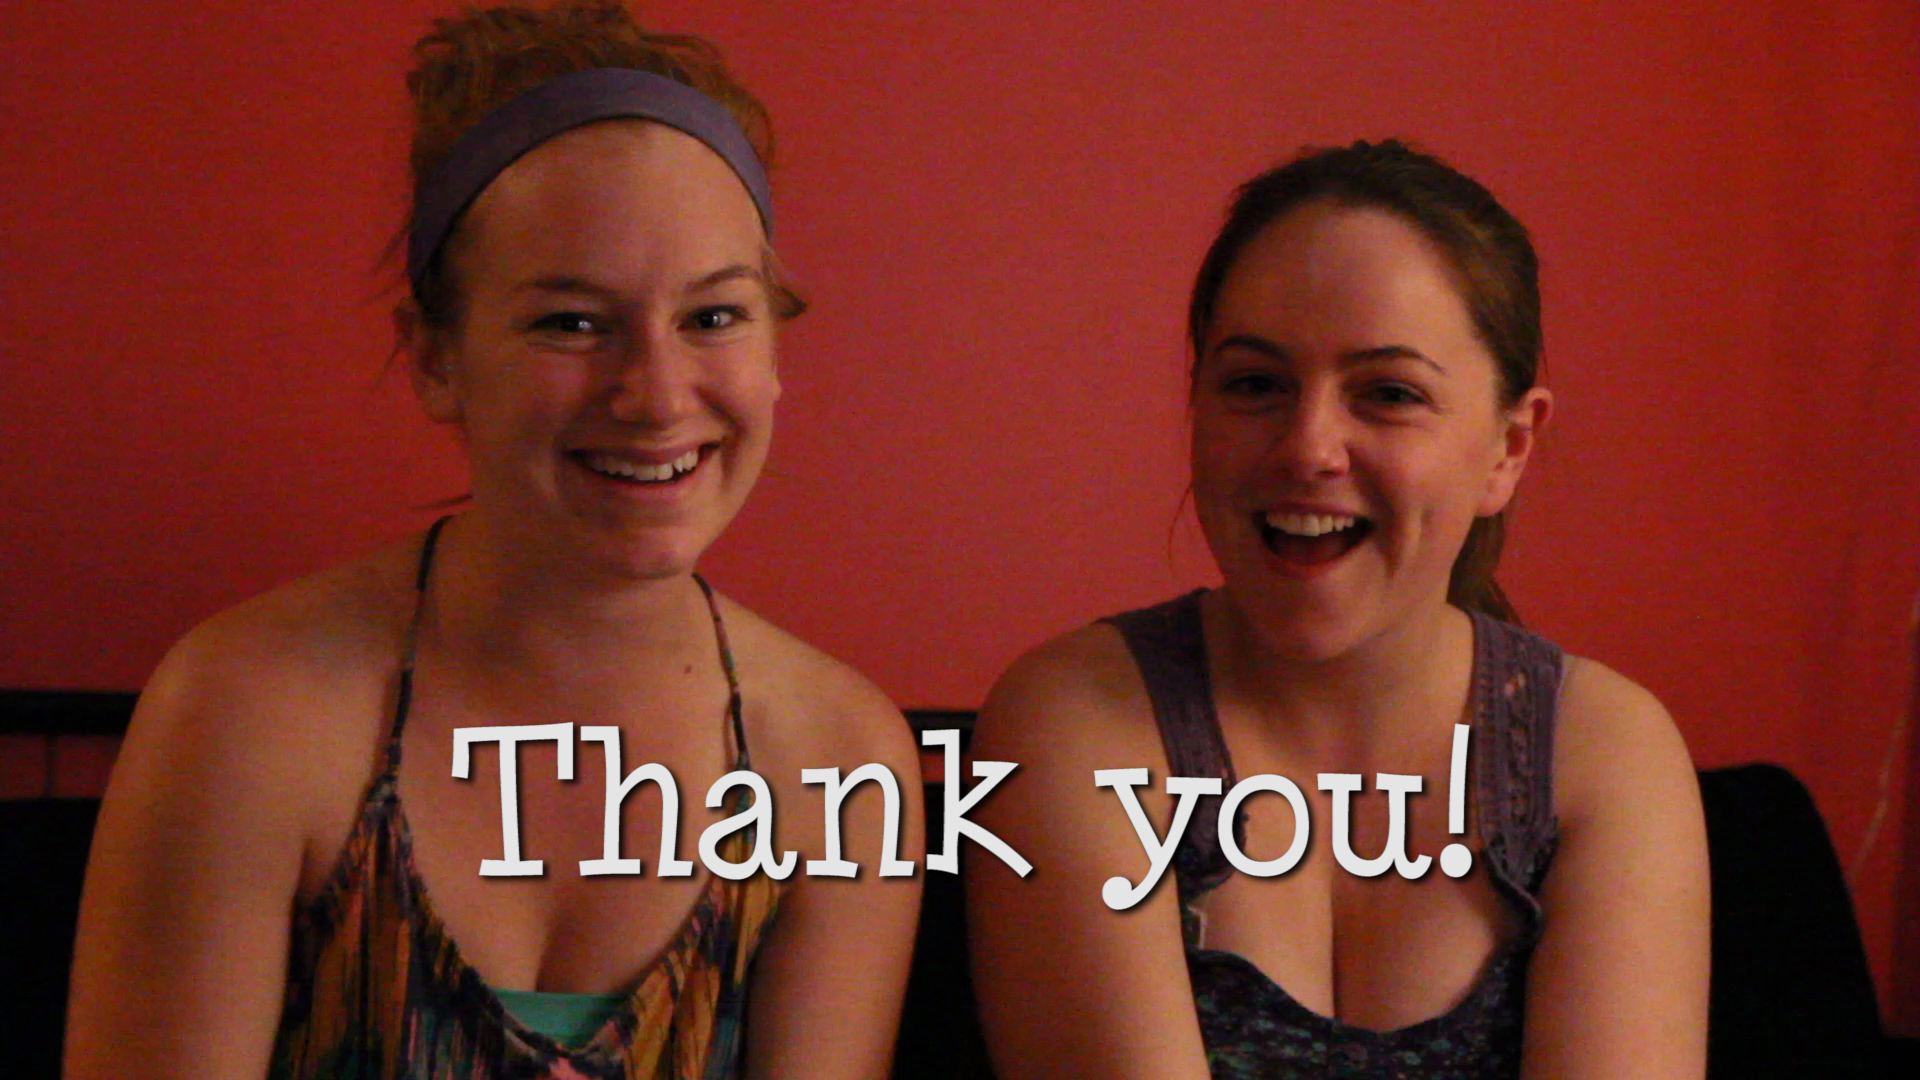 Thank you from Lindsey & Kate!